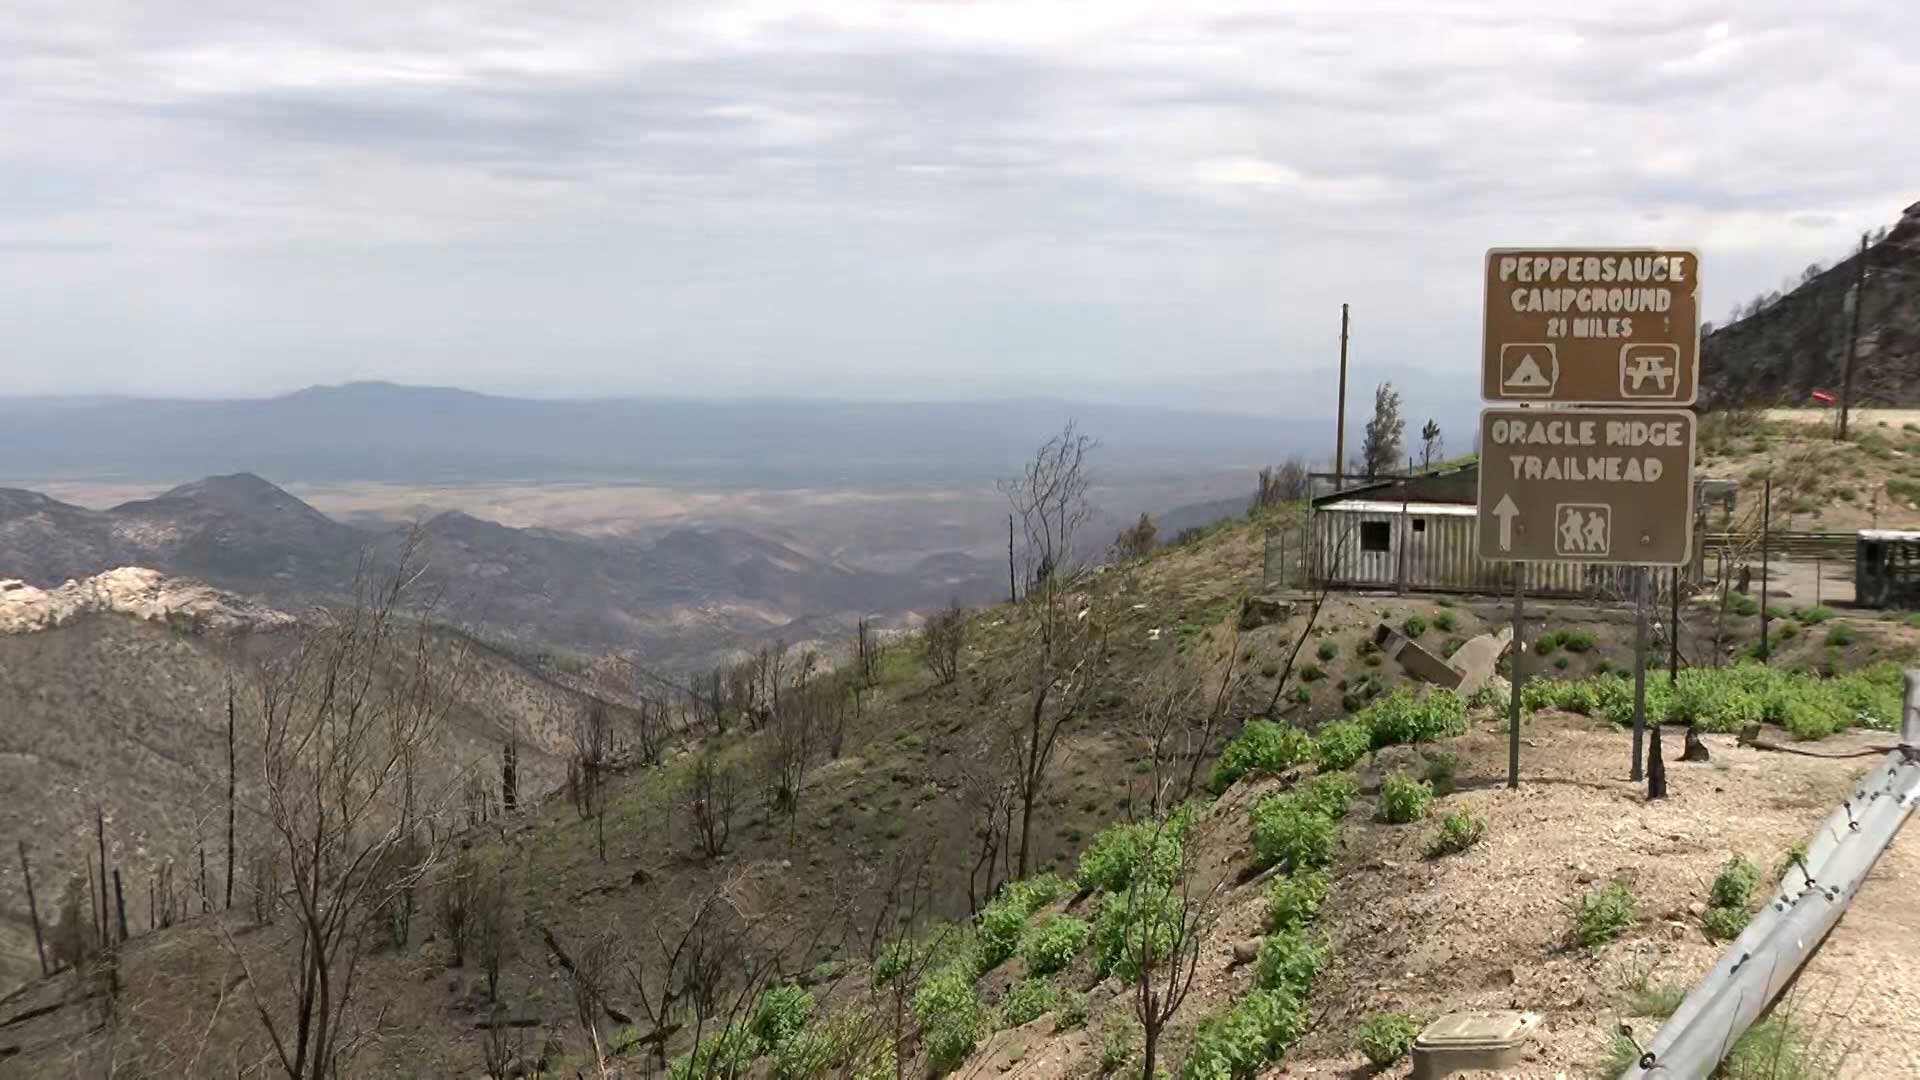 An area burned by the Bighorn Fire in the Santa Catalina mountains.